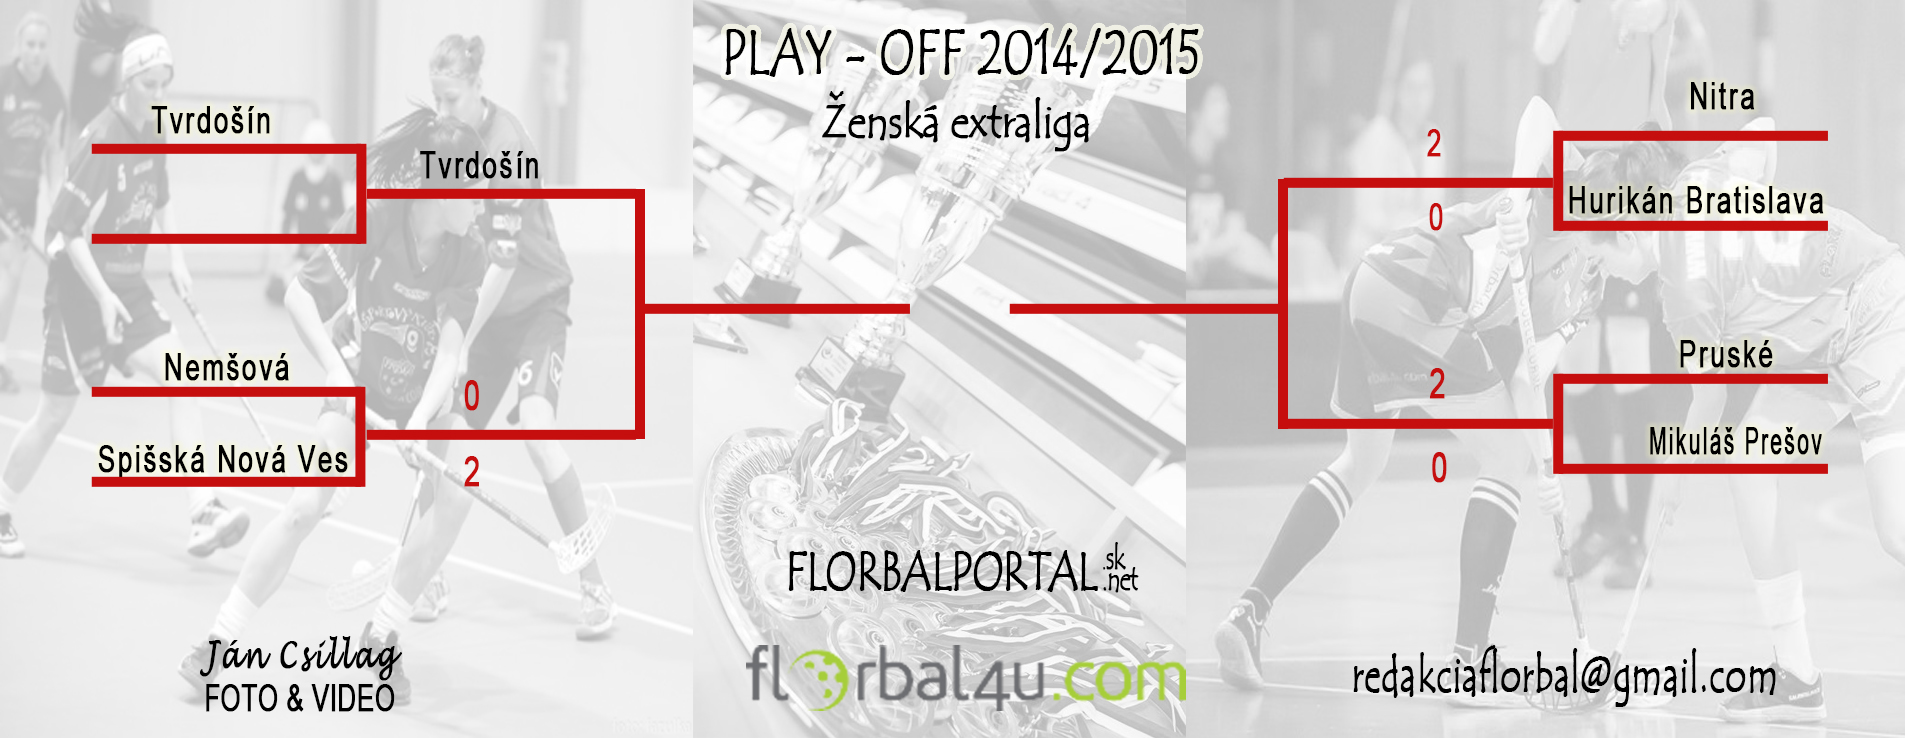 play-off-zeny-2015